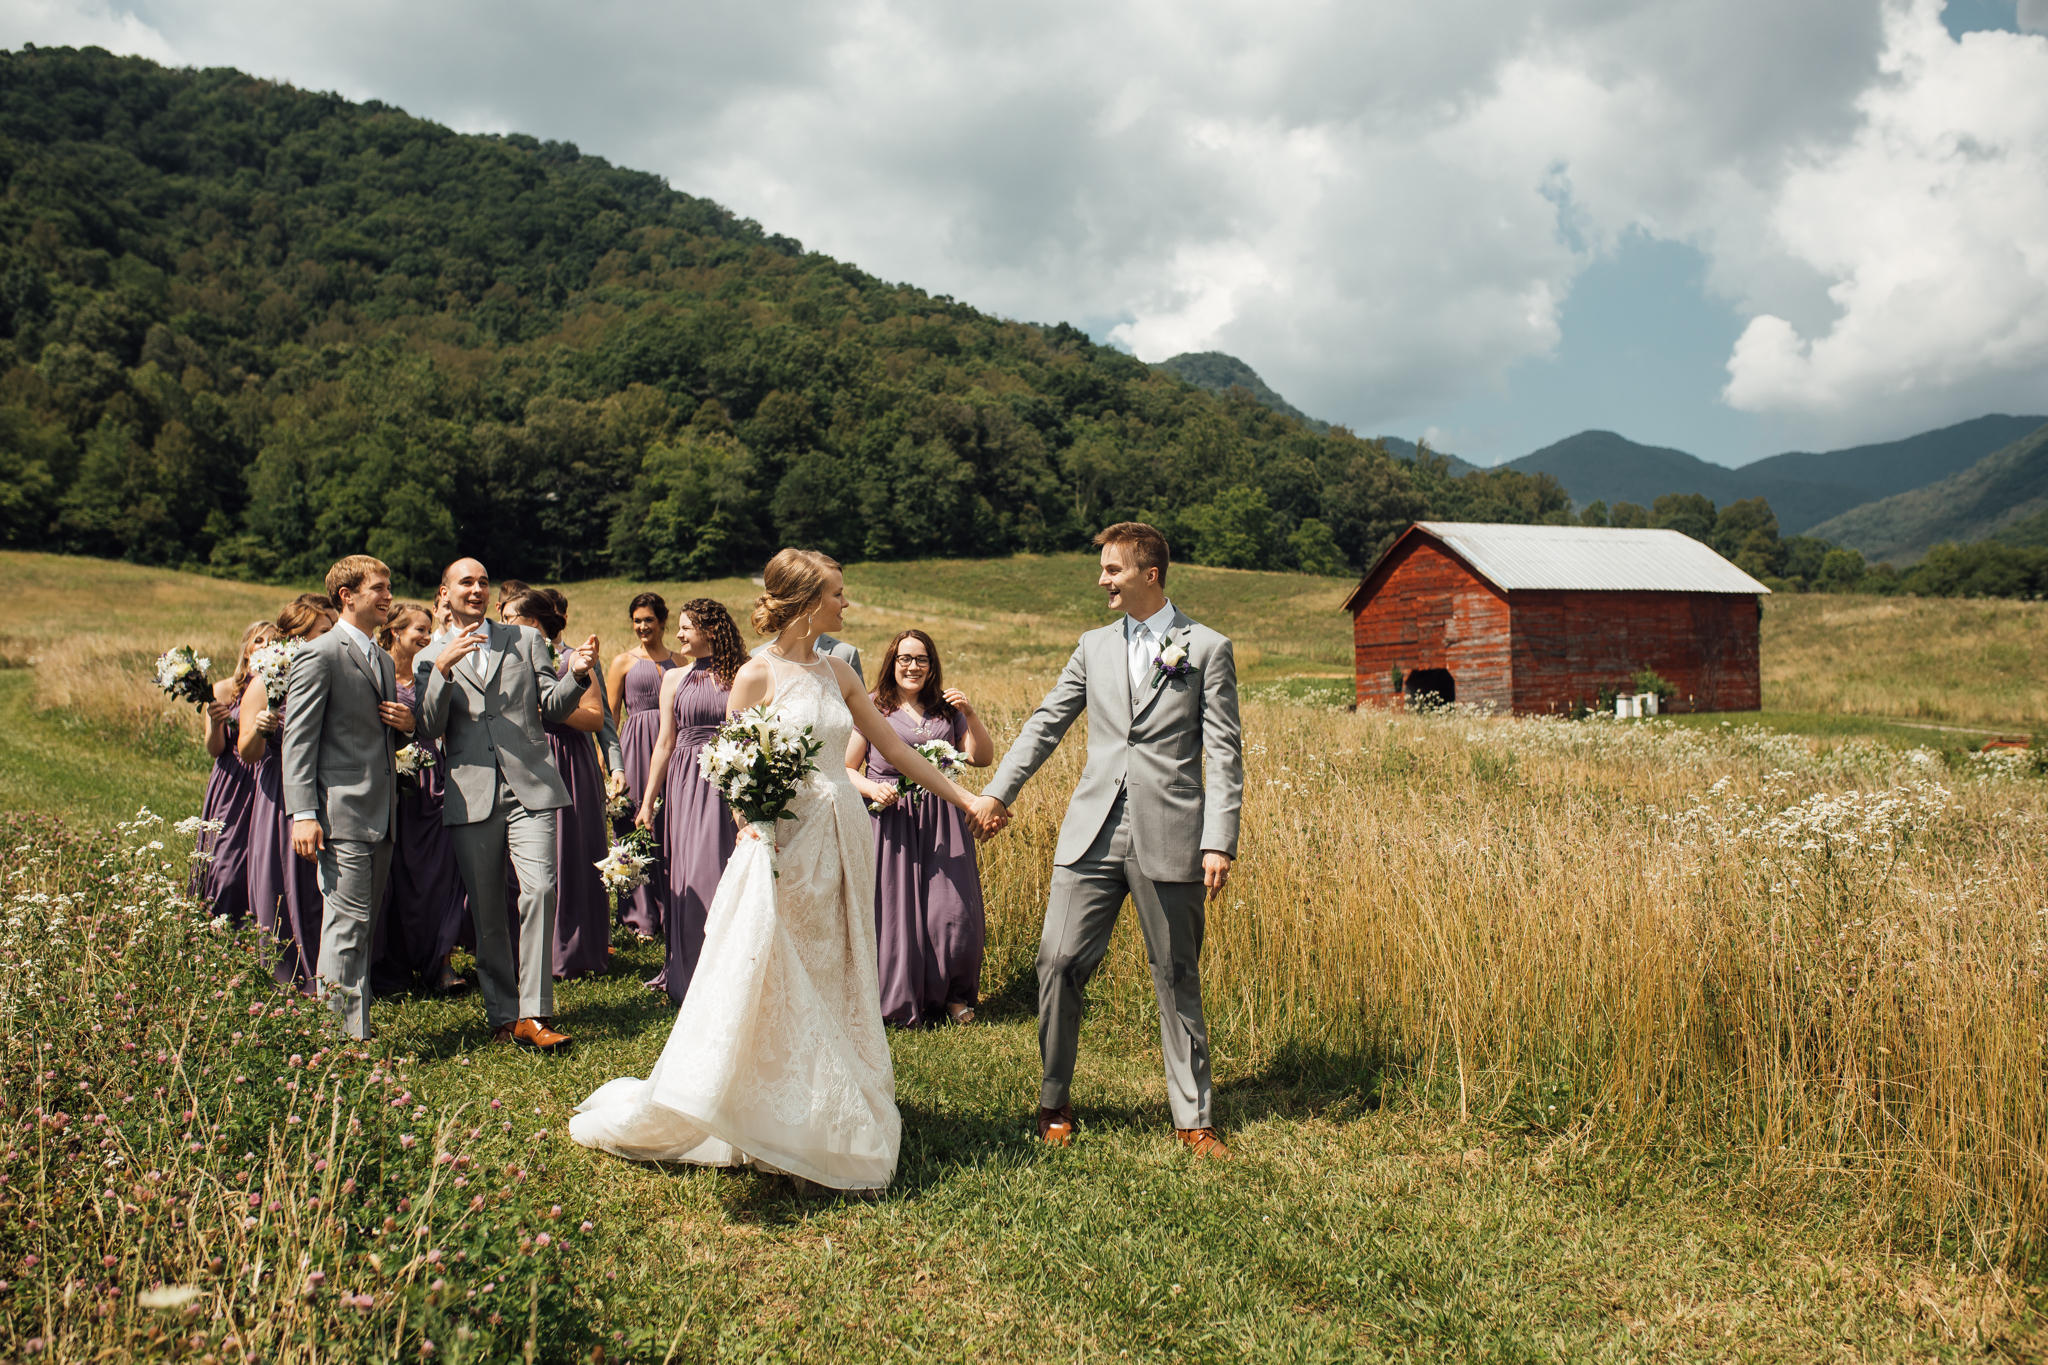 ashville-wedding-photographers-thewarmtharoundyou--backyard-asheville-wedding-mountain-wedding (74 of 244).jpg